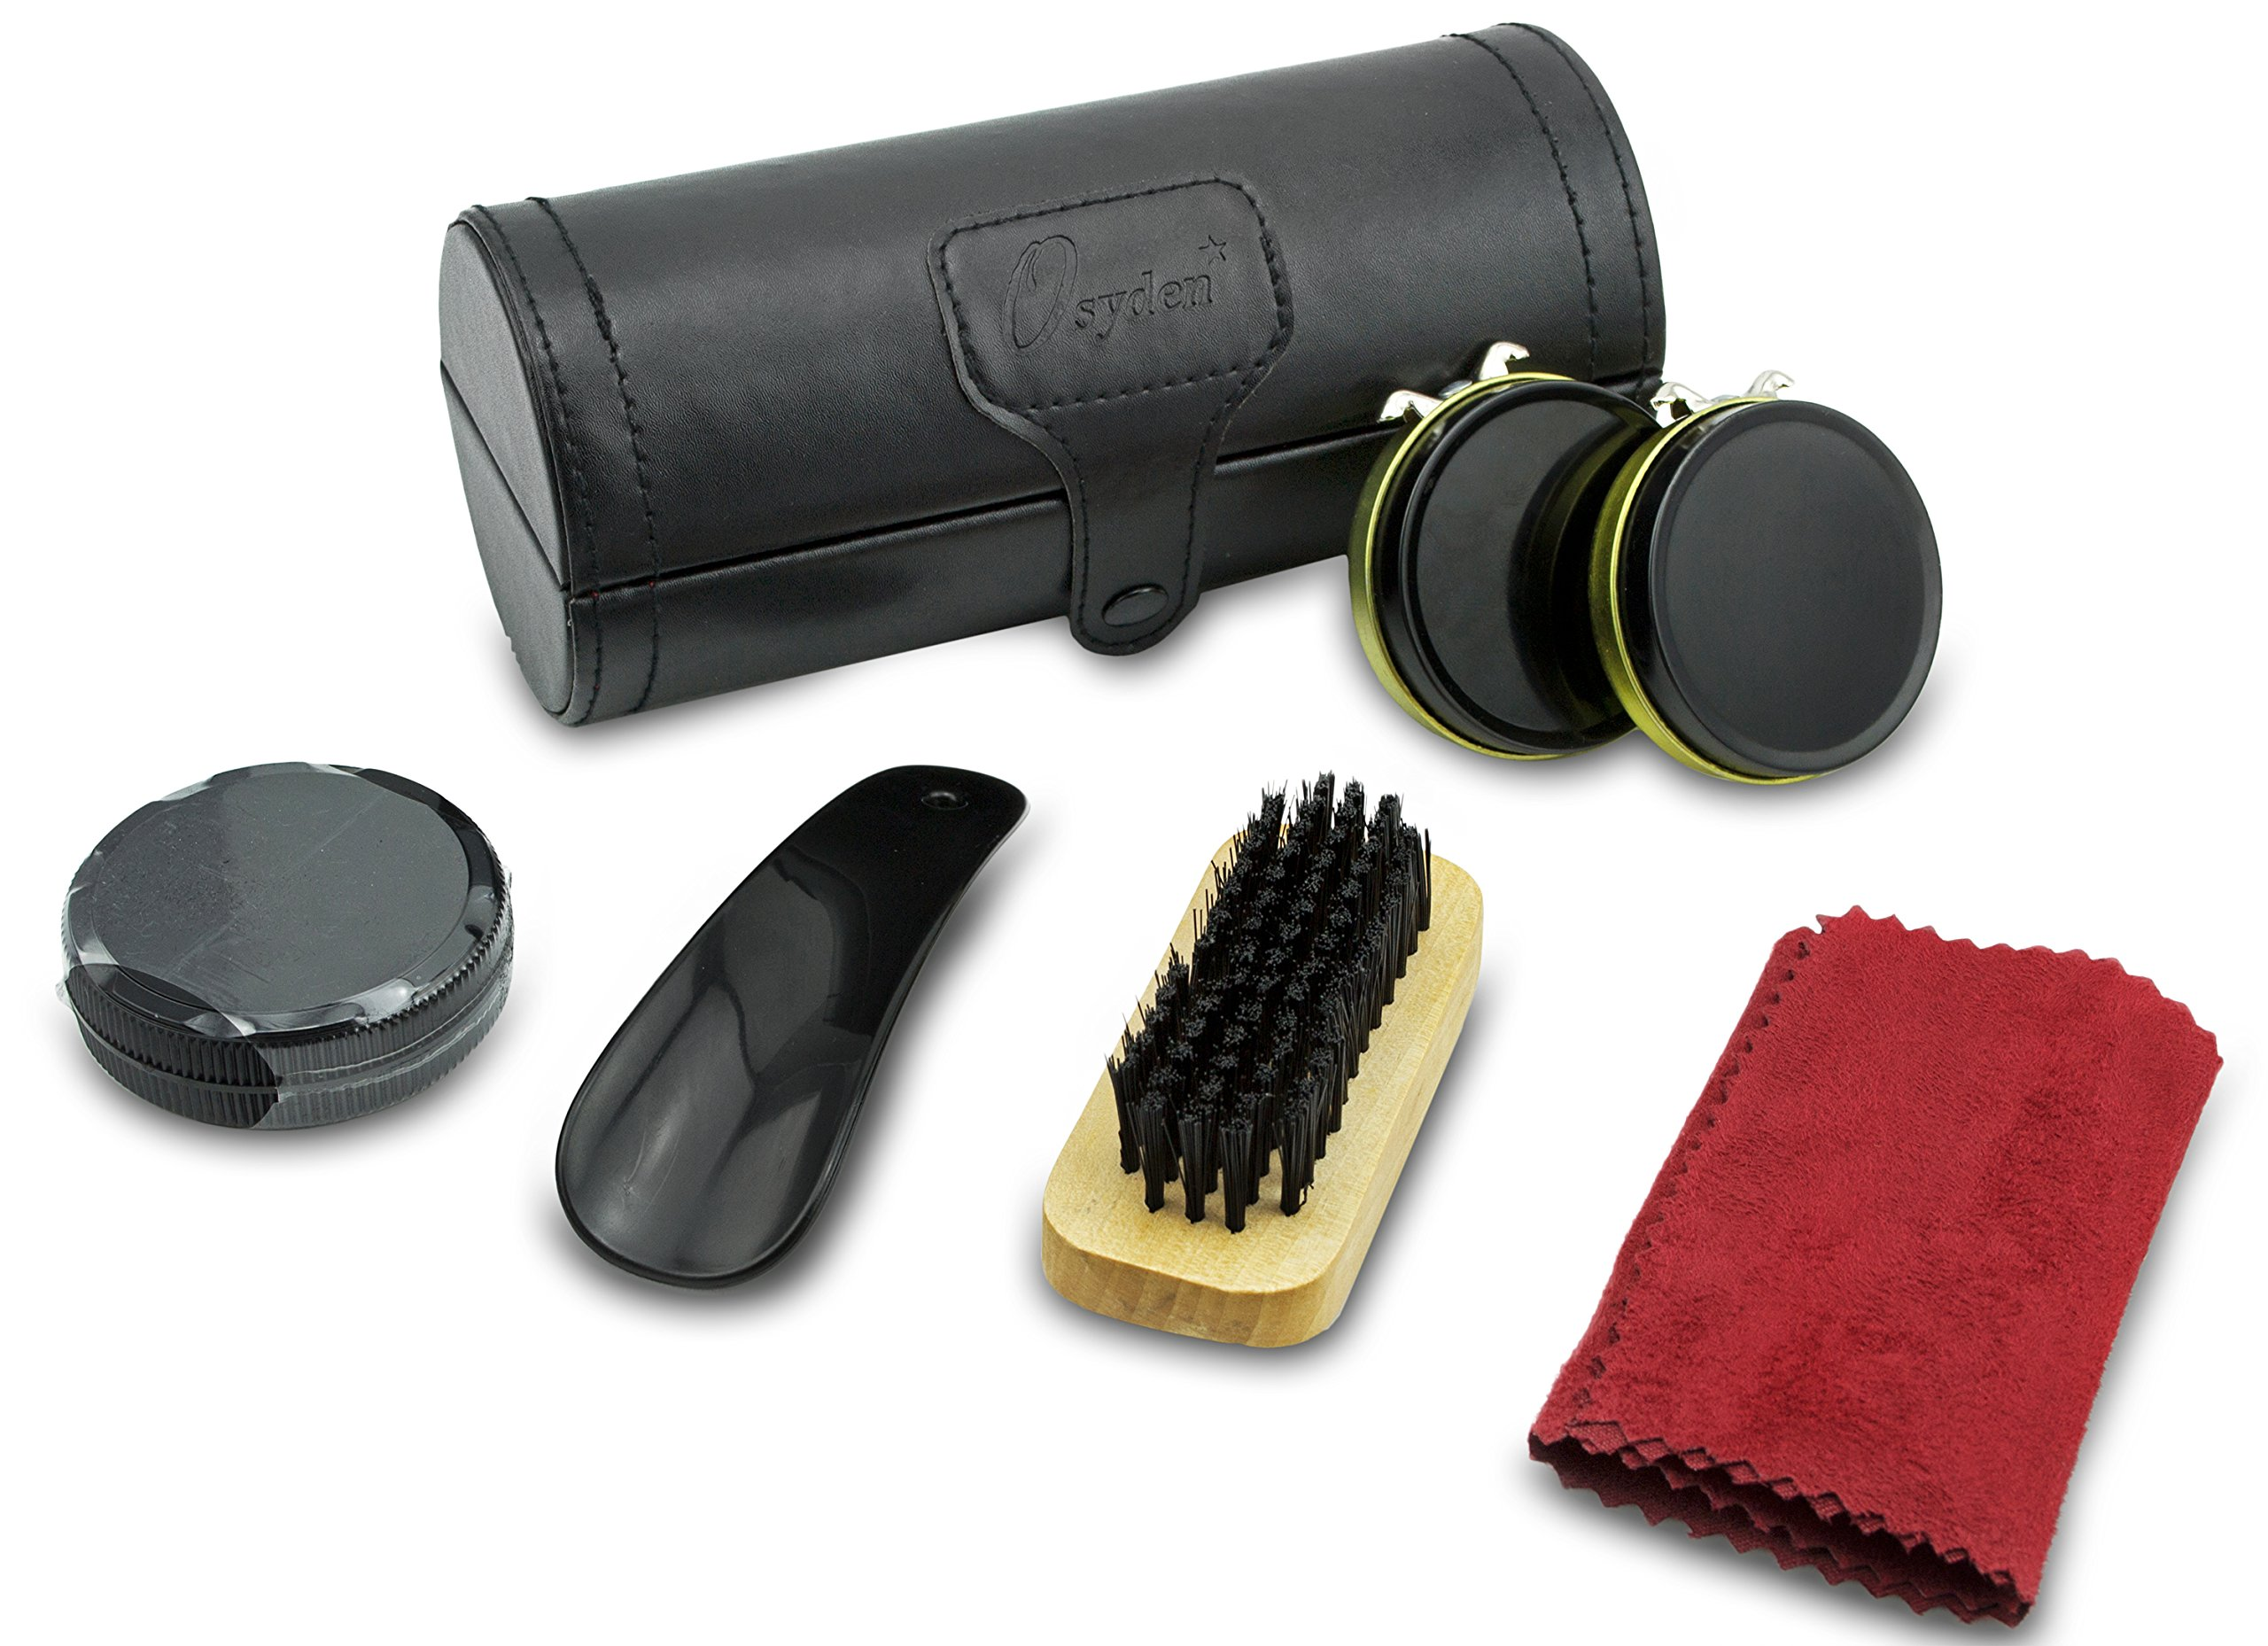 Shoe Shine Kit Keeps Leather Shoes Shiny. This Shoe Polish Set Will Complete Your Business Executive Look. Use for Shoe Care with All Supplies Such As Brush, Buffer, Sponge, Cloth for Cleaning Boots & Loafers. A Shoeshine Valet Gift for Him Men Boss Fathe